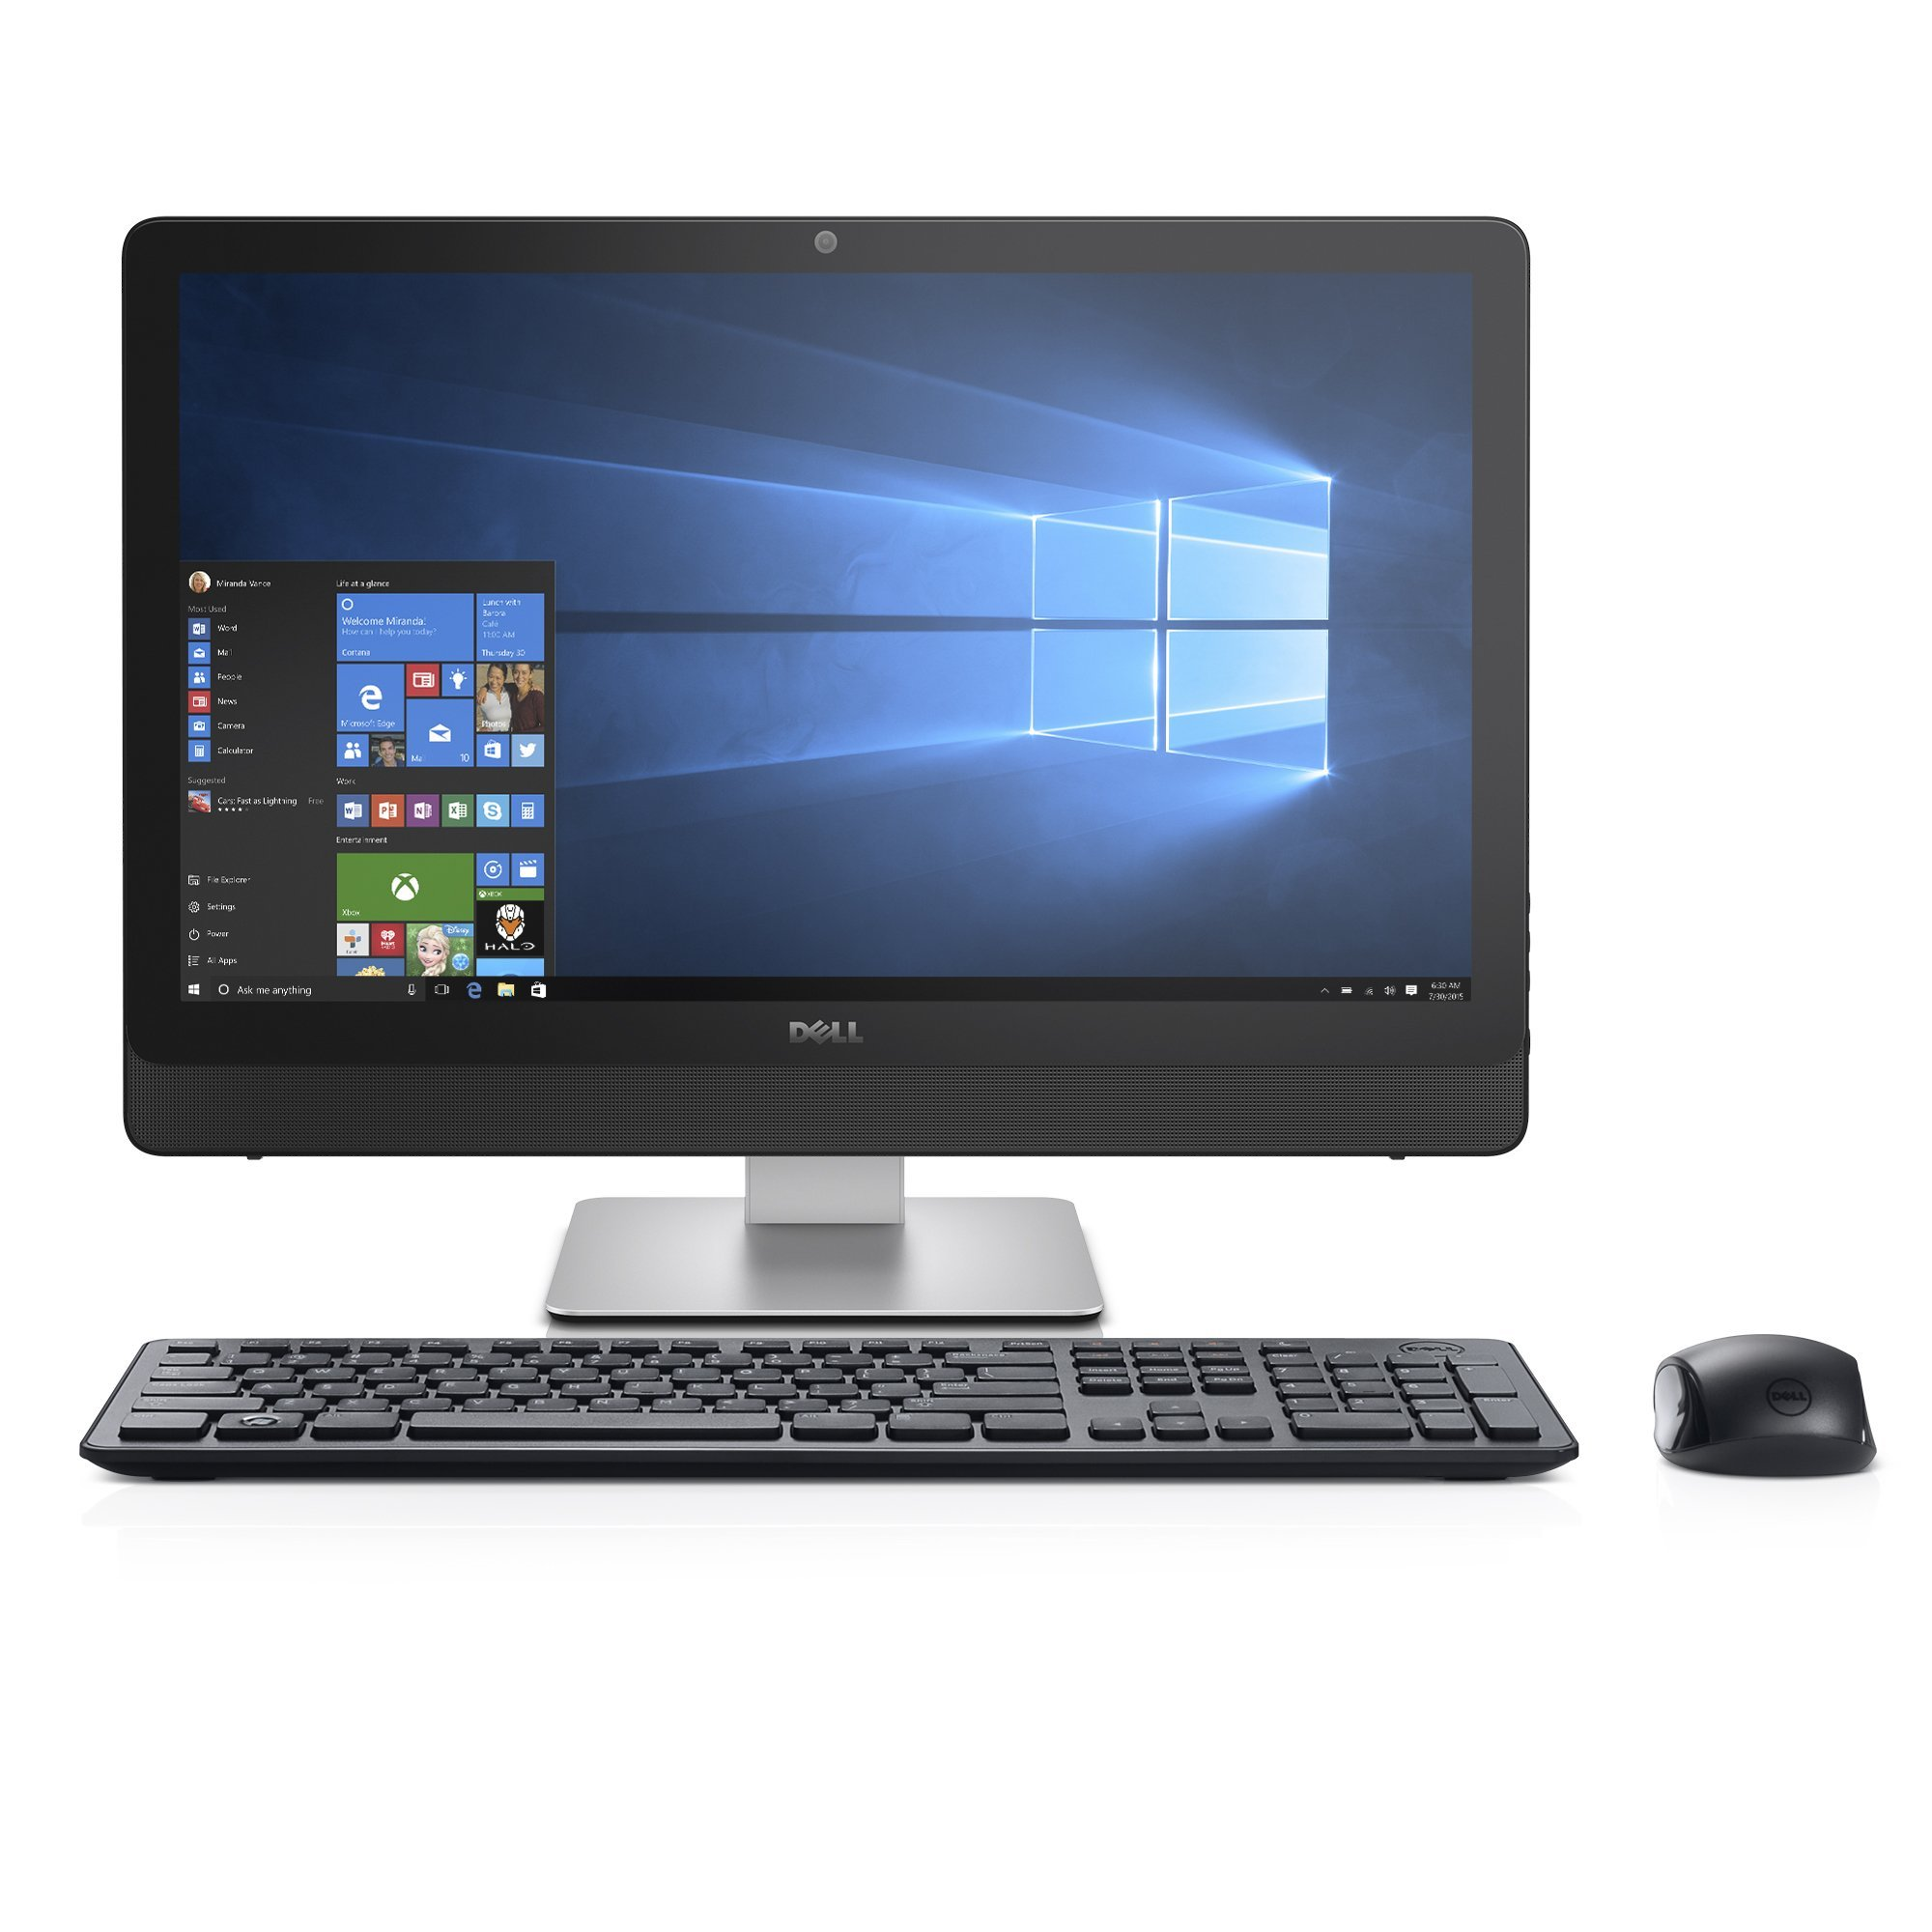 Dell Inspiron 24 3000 Series All-In-One (Intel Core i3, 8 GB RAM, 500 GB HDD) by Dell